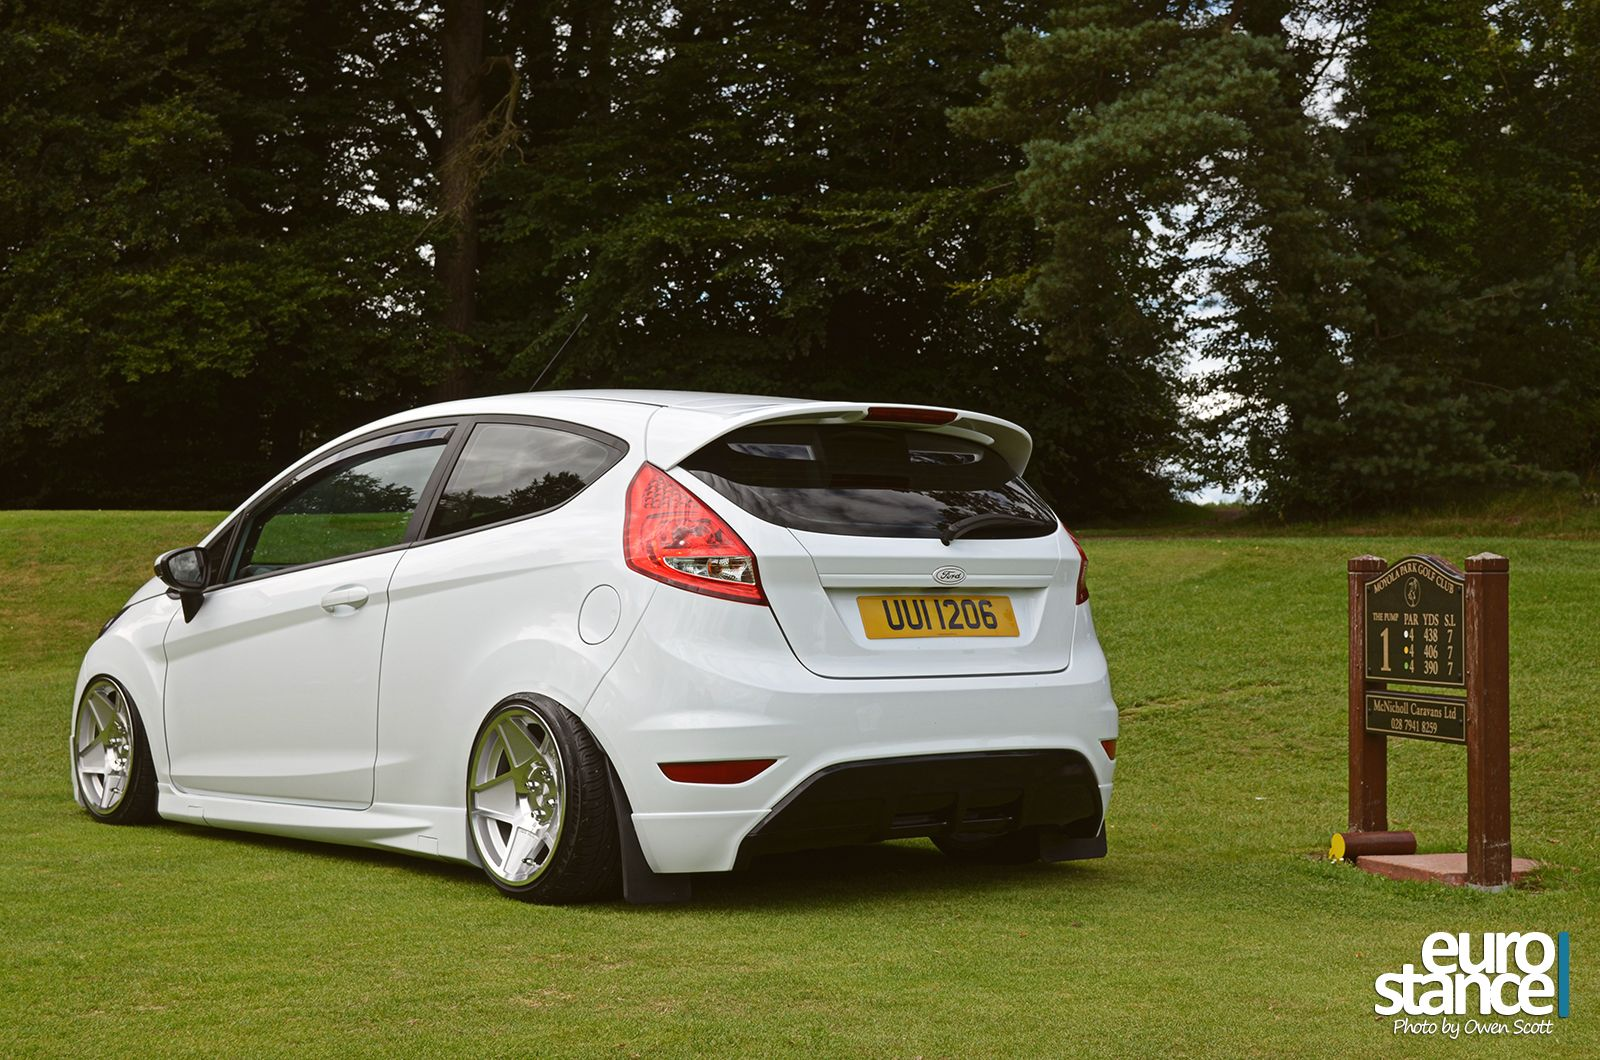 Pin By Grant On Ford Henry Ford Ford Fiesta Modified Ford